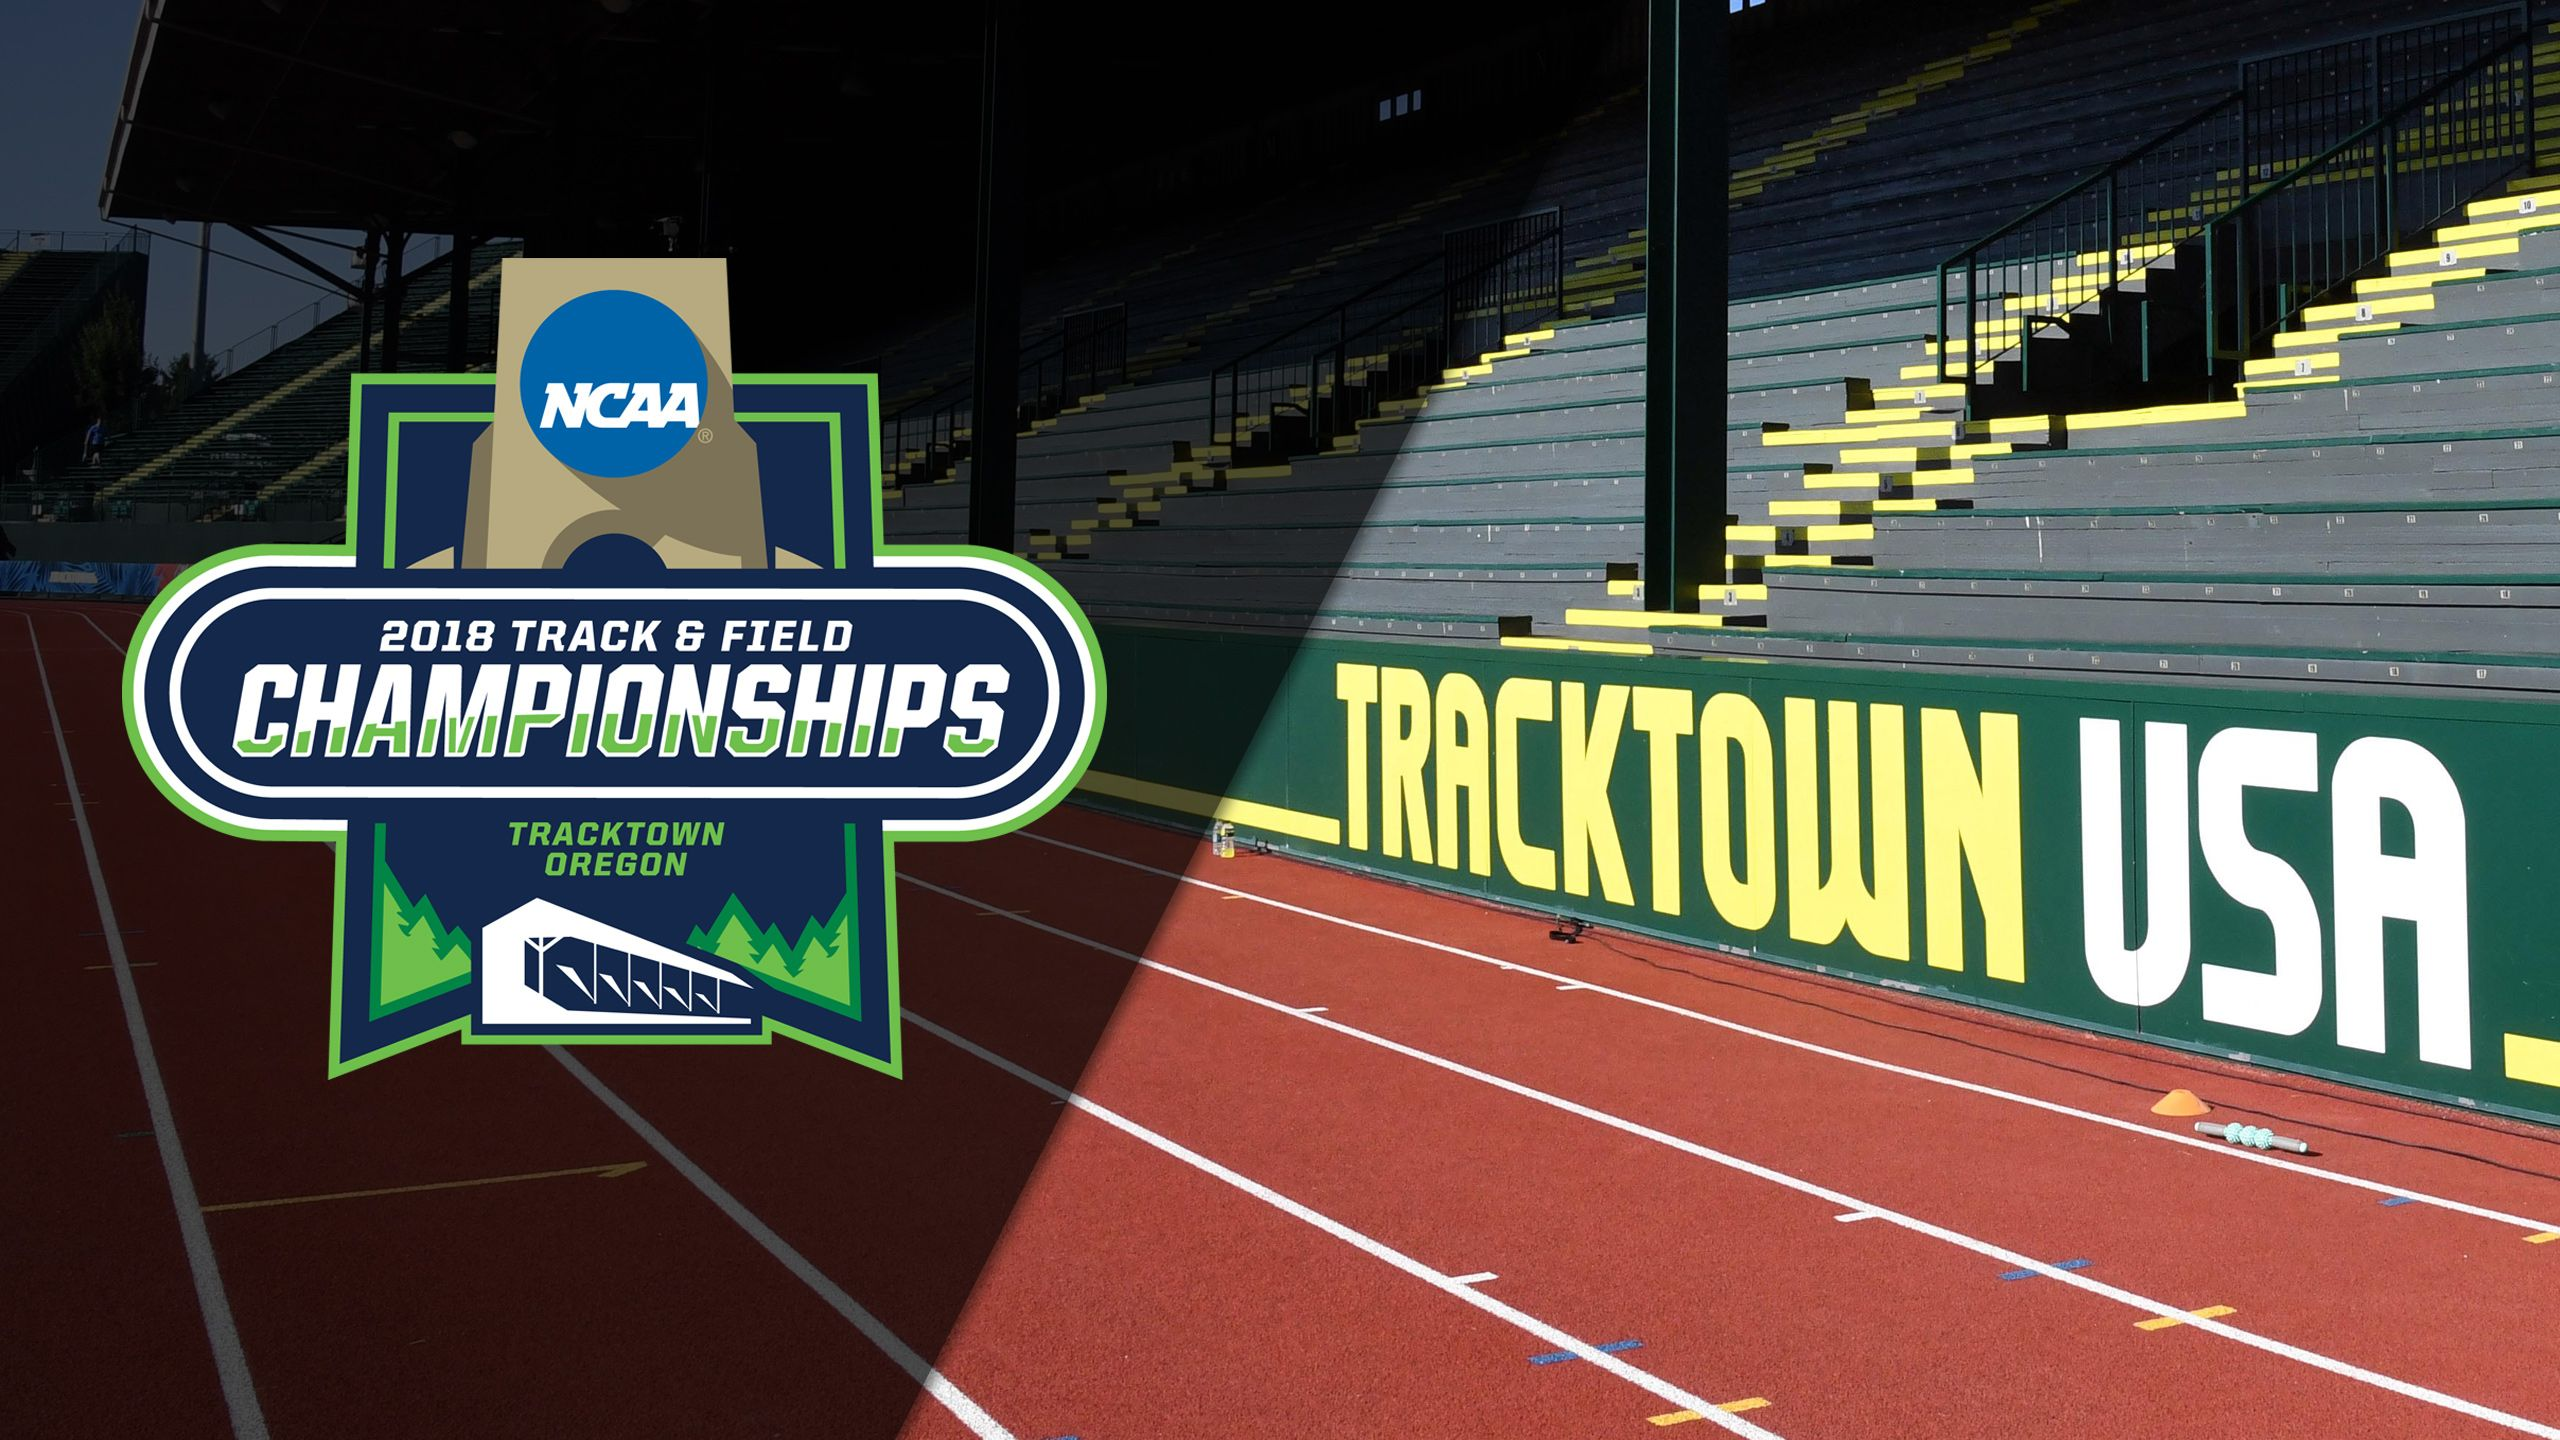 NCAA Men's & Women's Track & Field Outdoor Championships